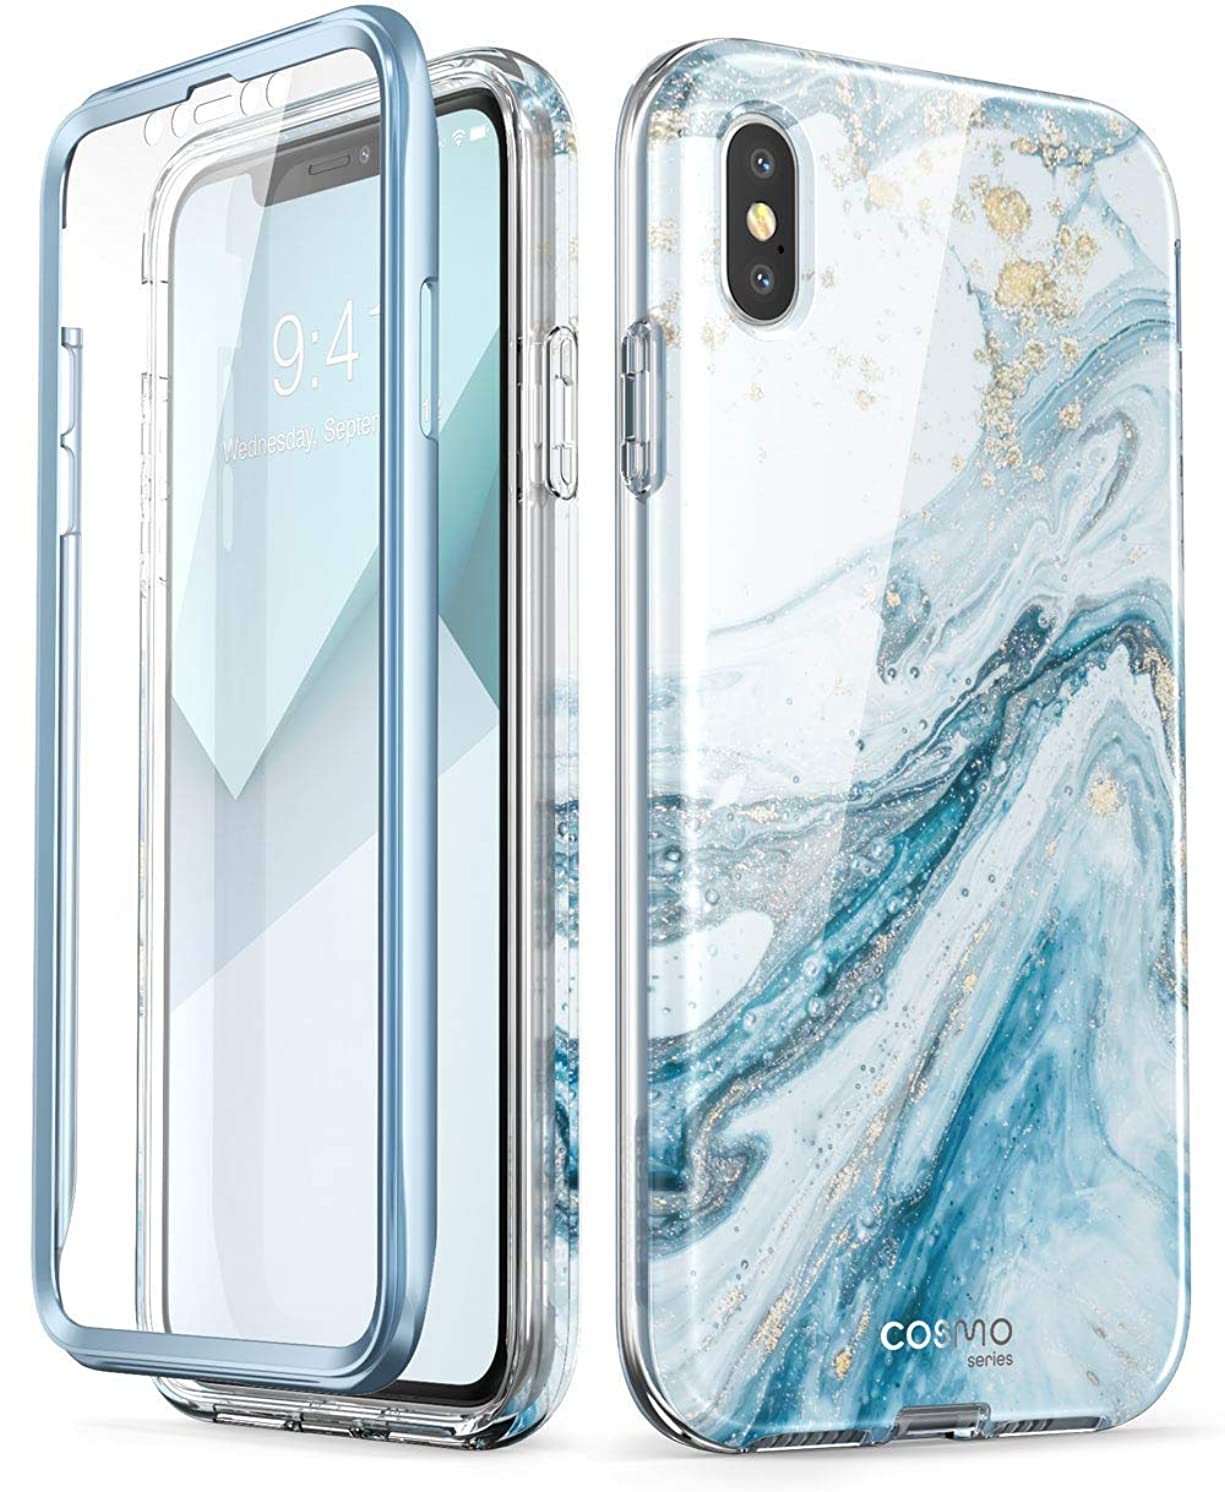 iPhone Xs Case, iPhone X Case,[Built-in Screen Protector] i-Blason [Cosmo] Full-Body Glitter Bumper Case for iPhone Xs 5.8 Inch 2018 Release (Blue) (Renewed)